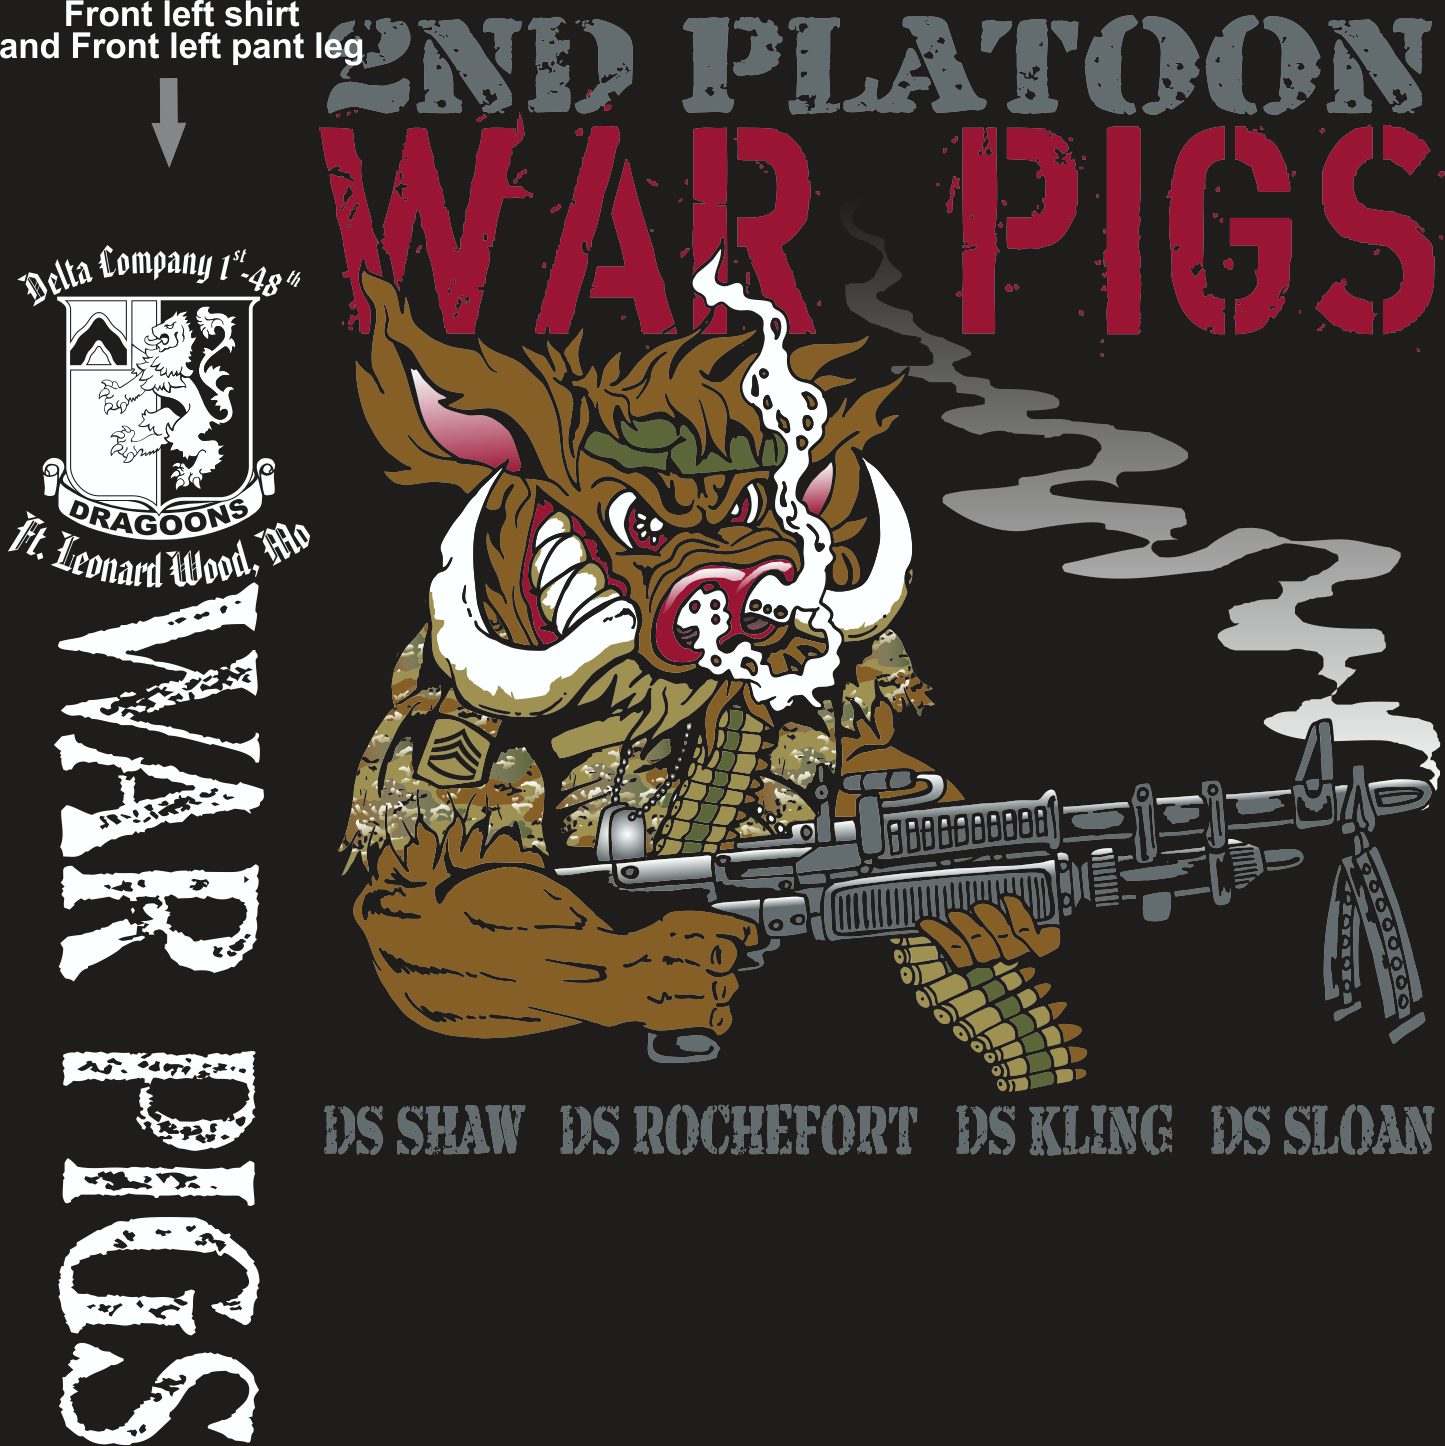 DELTA 1-48 WAR PIGS GRADUATING DAY 3-24-2016 digital